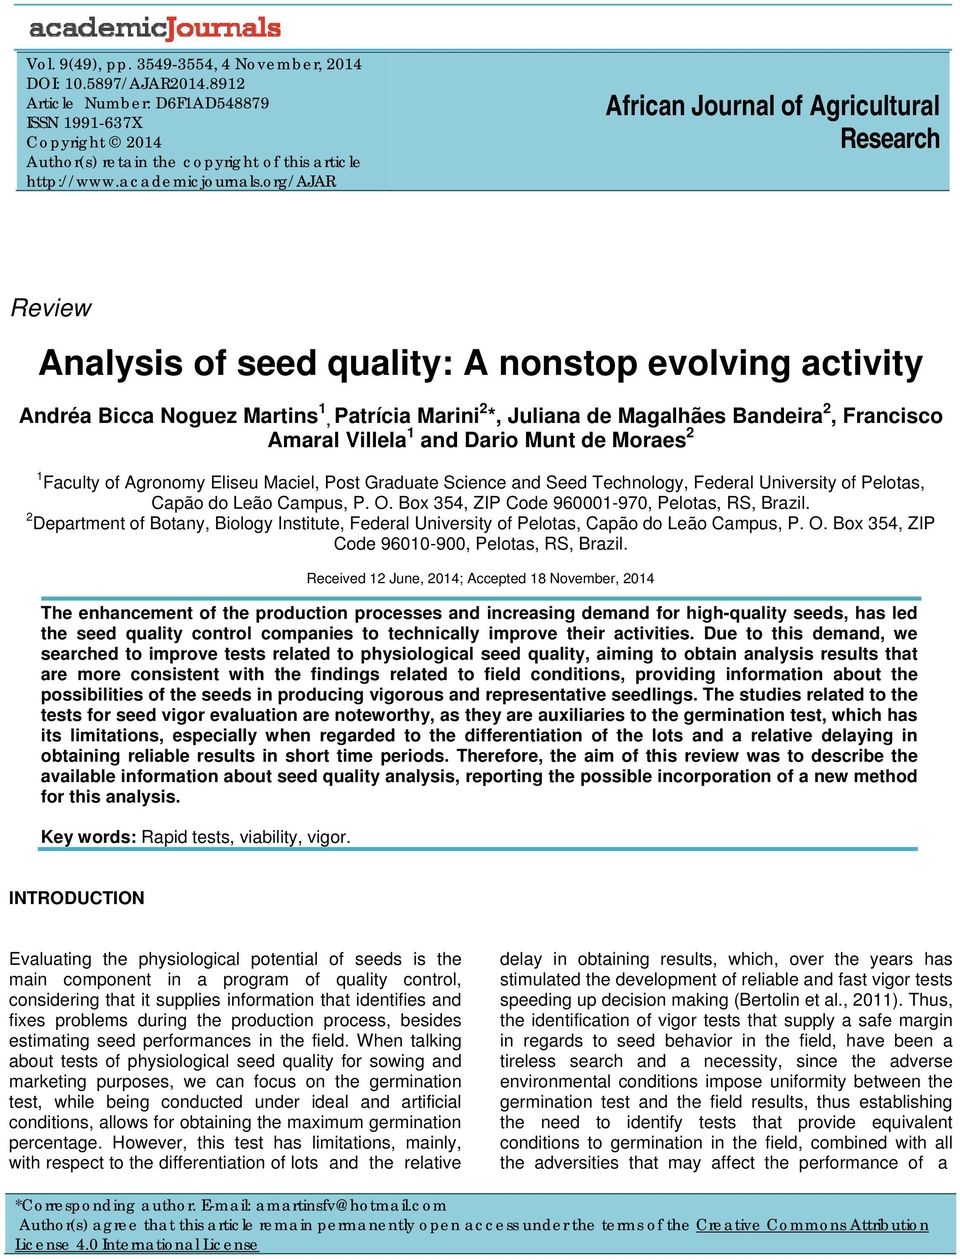 org/ajar African Journal of Agricultural Research Review Analysis of seed quality: A nonstop evolving activity Andréa Bicca Noguez Martins 1, Patrícia Marini 2 *, Juliana de Magalhães Bandeira 2,